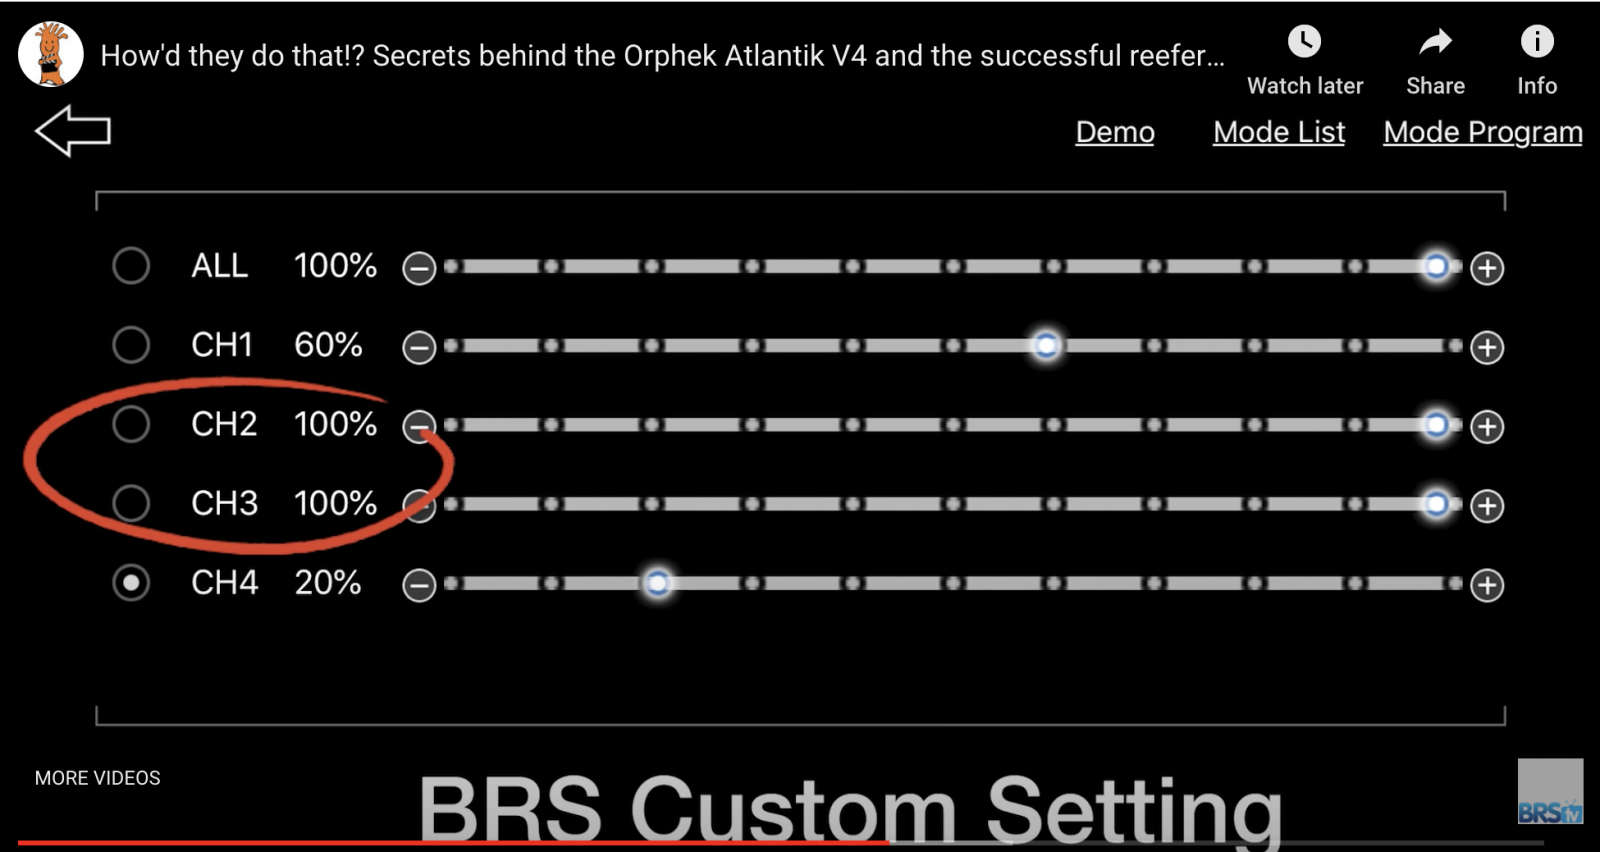 BRS Recommended settings of all channels